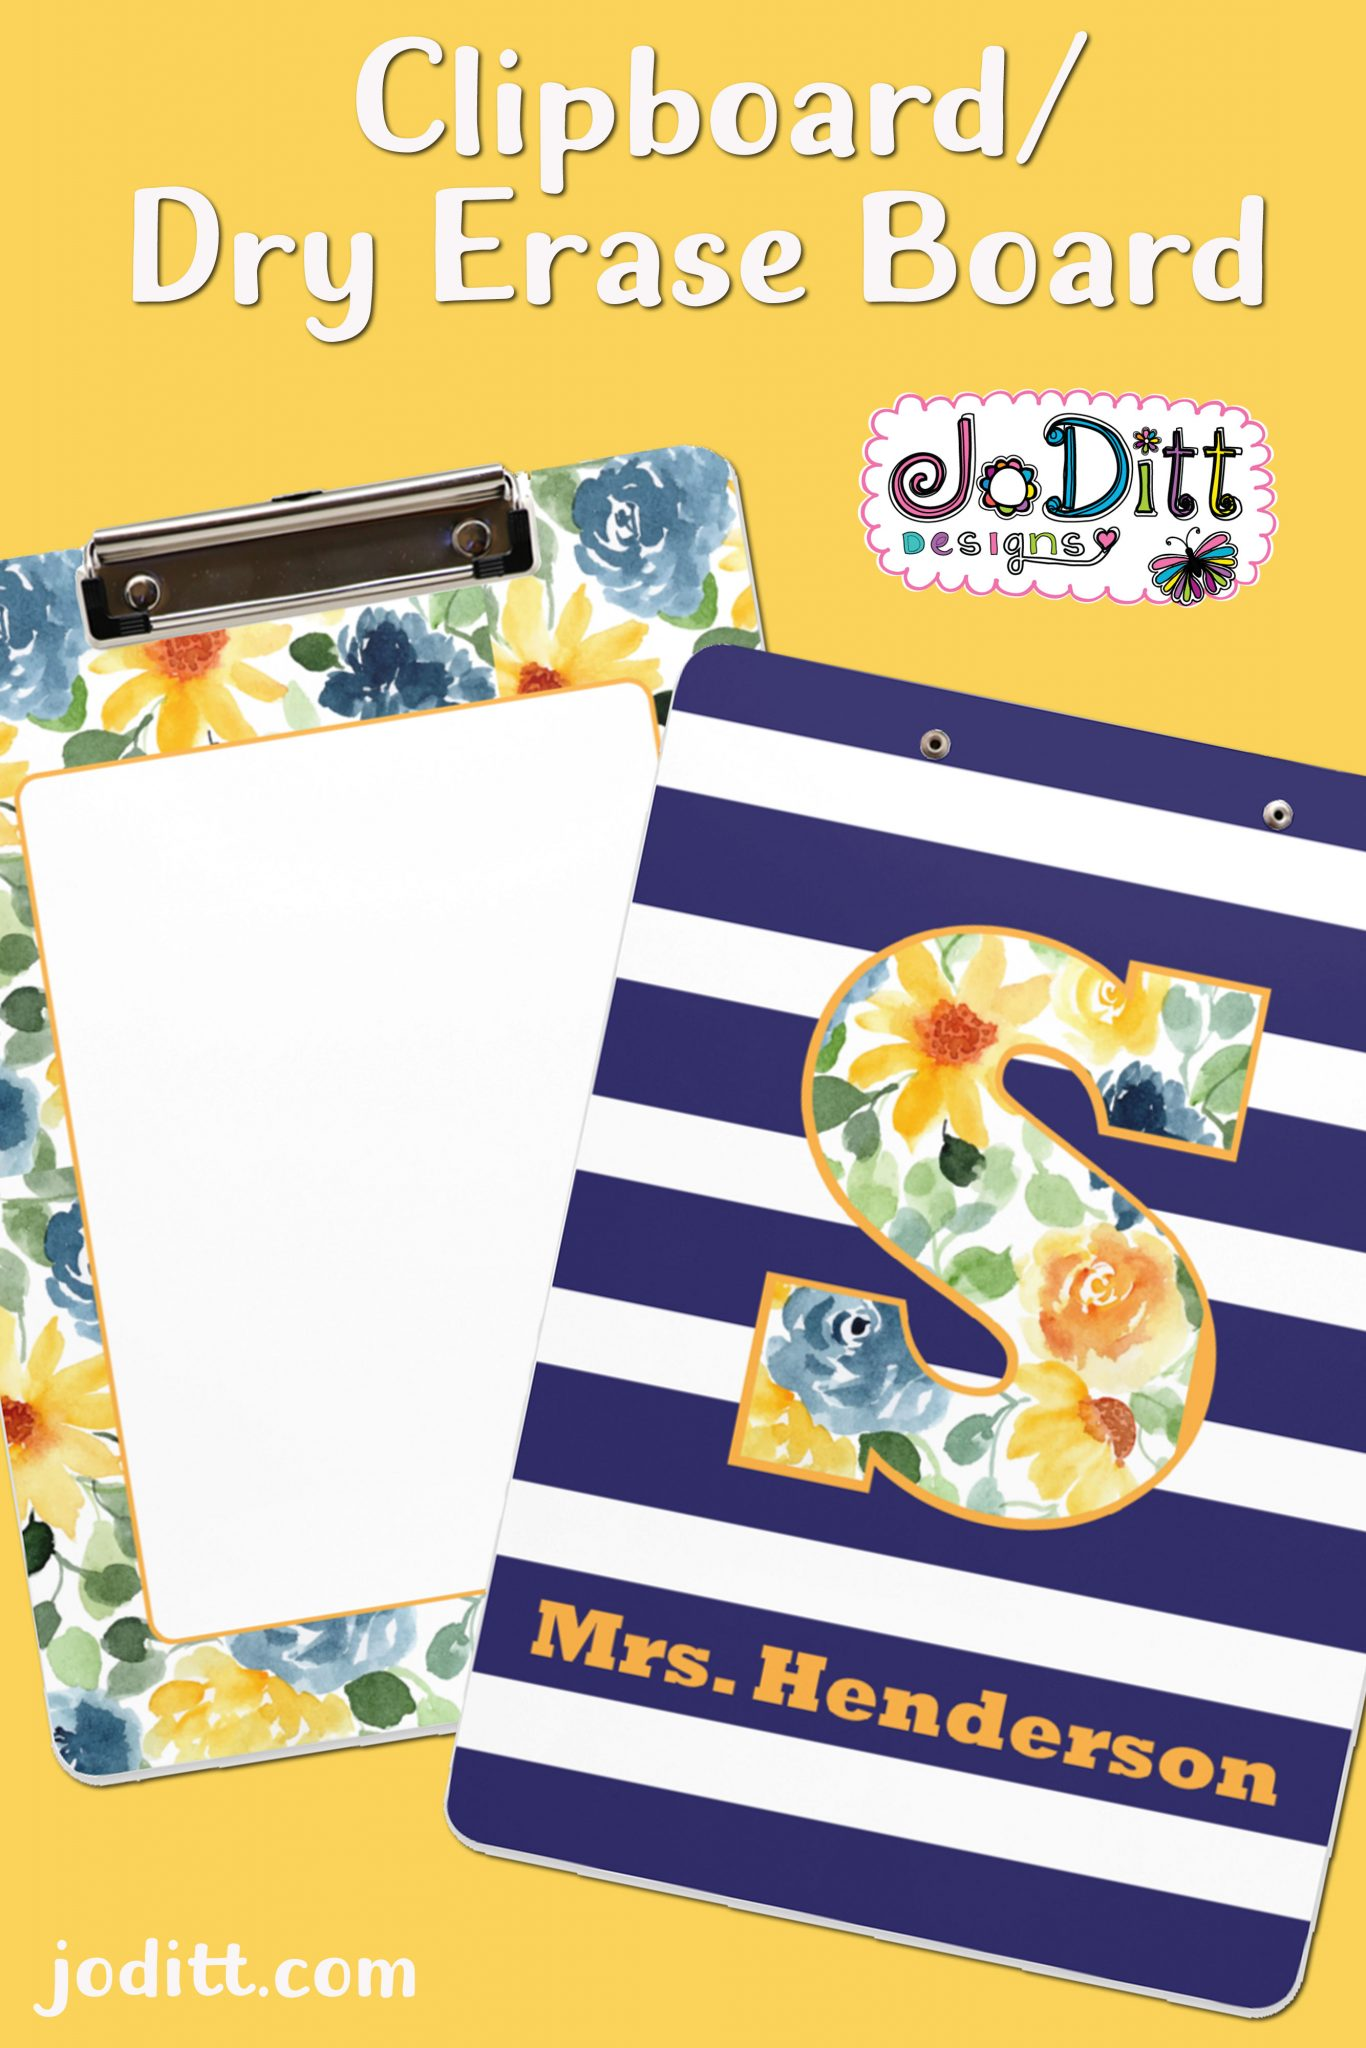 personalized-teacher-gift-clipboard-blue-gold-pin